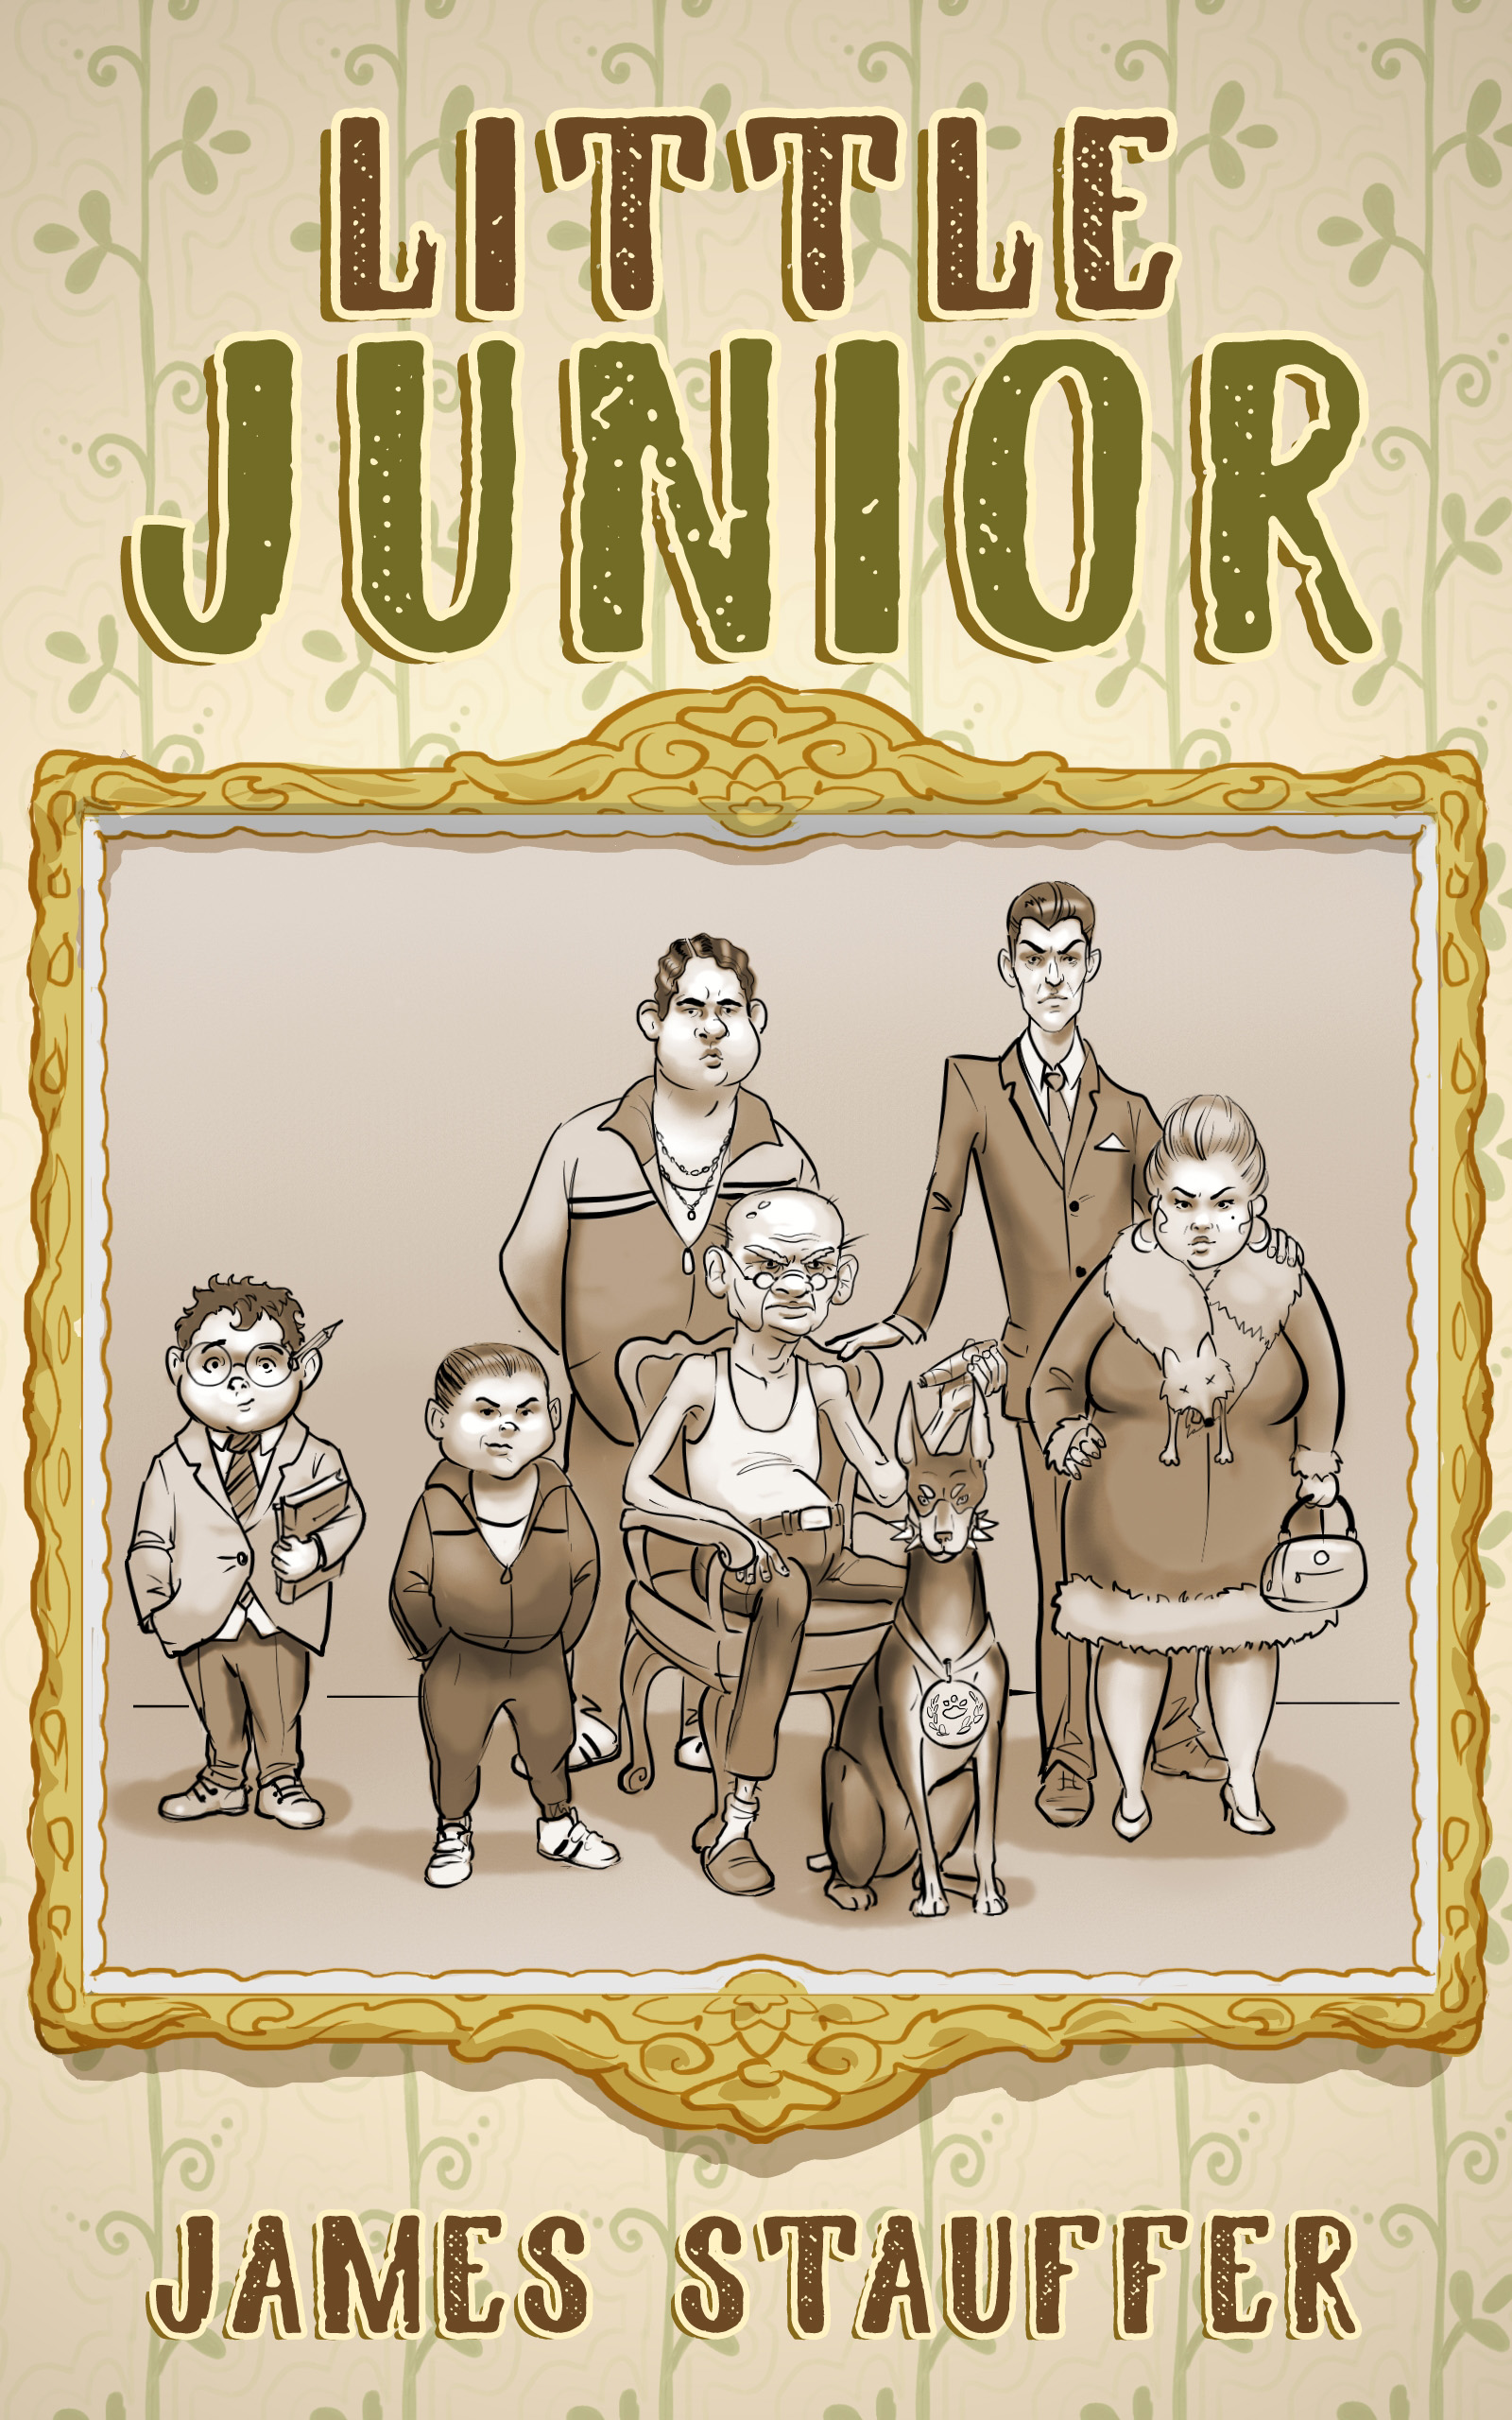 Little Junior, an Ebook by James Stauffer